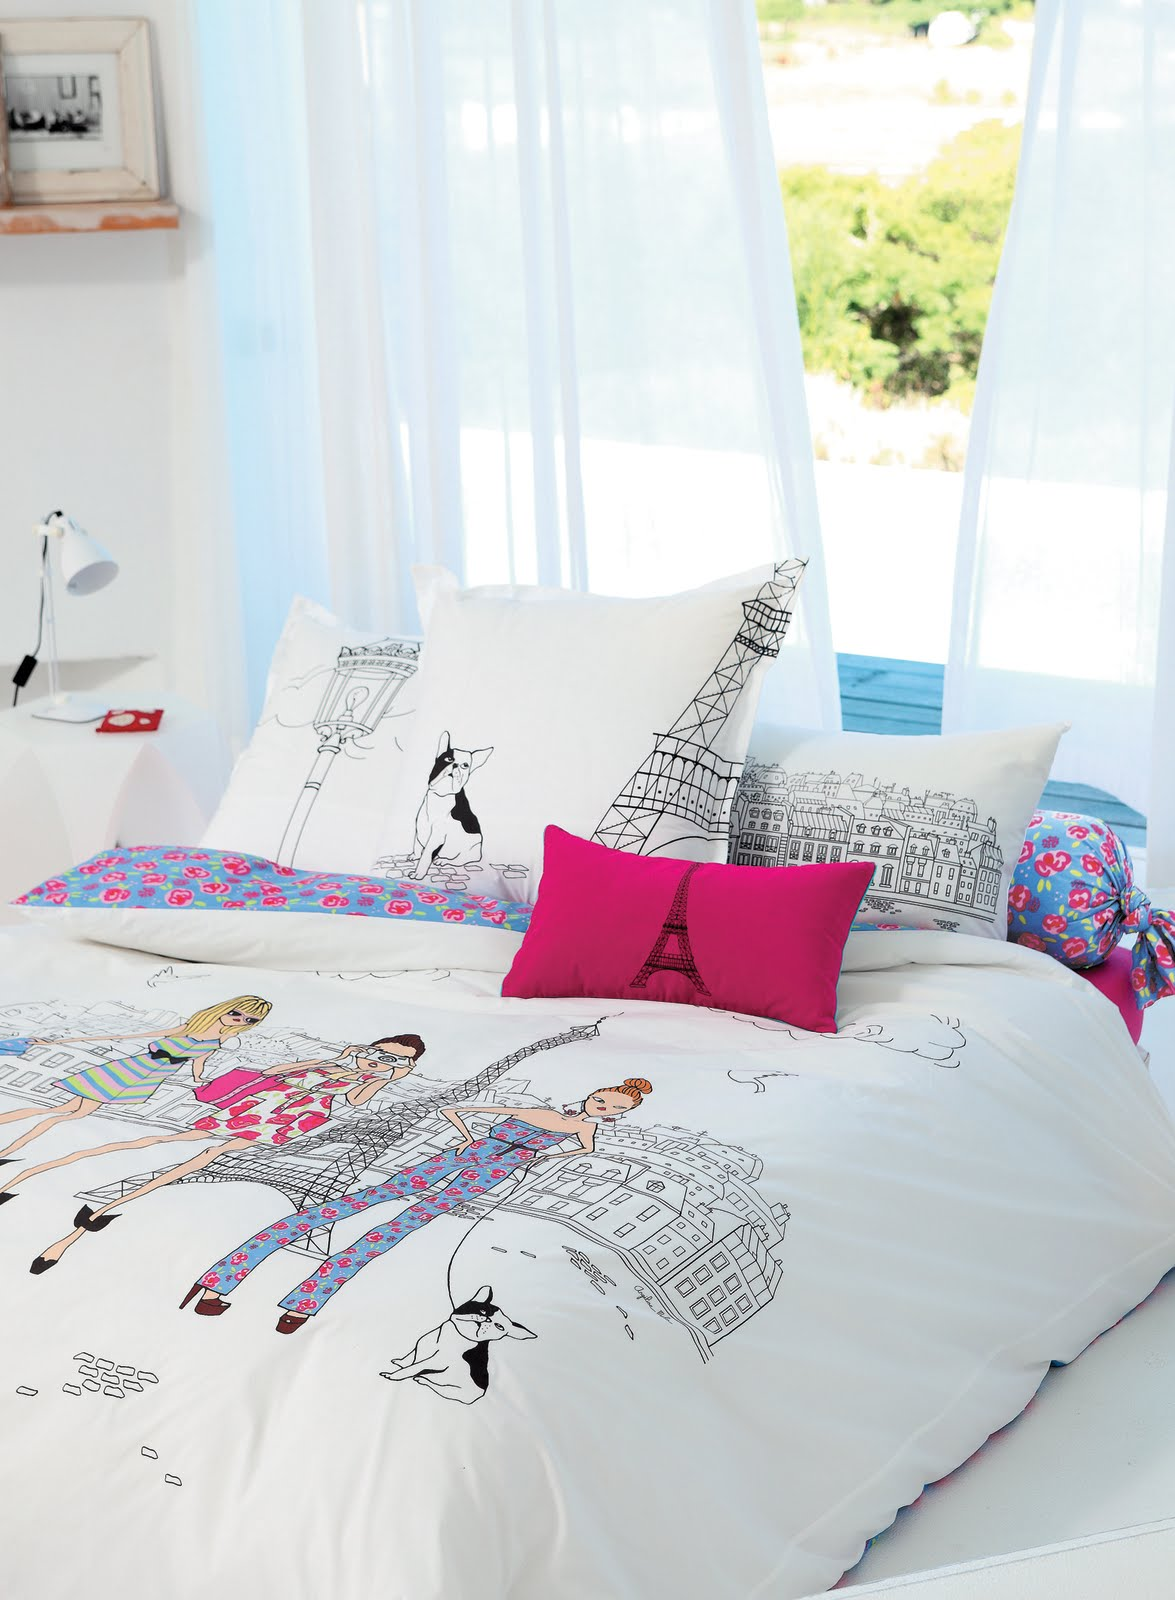 girly jusque sous ma couette lili blog mode biarritz. Black Bedroom Furniture Sets. Home Design Ideas